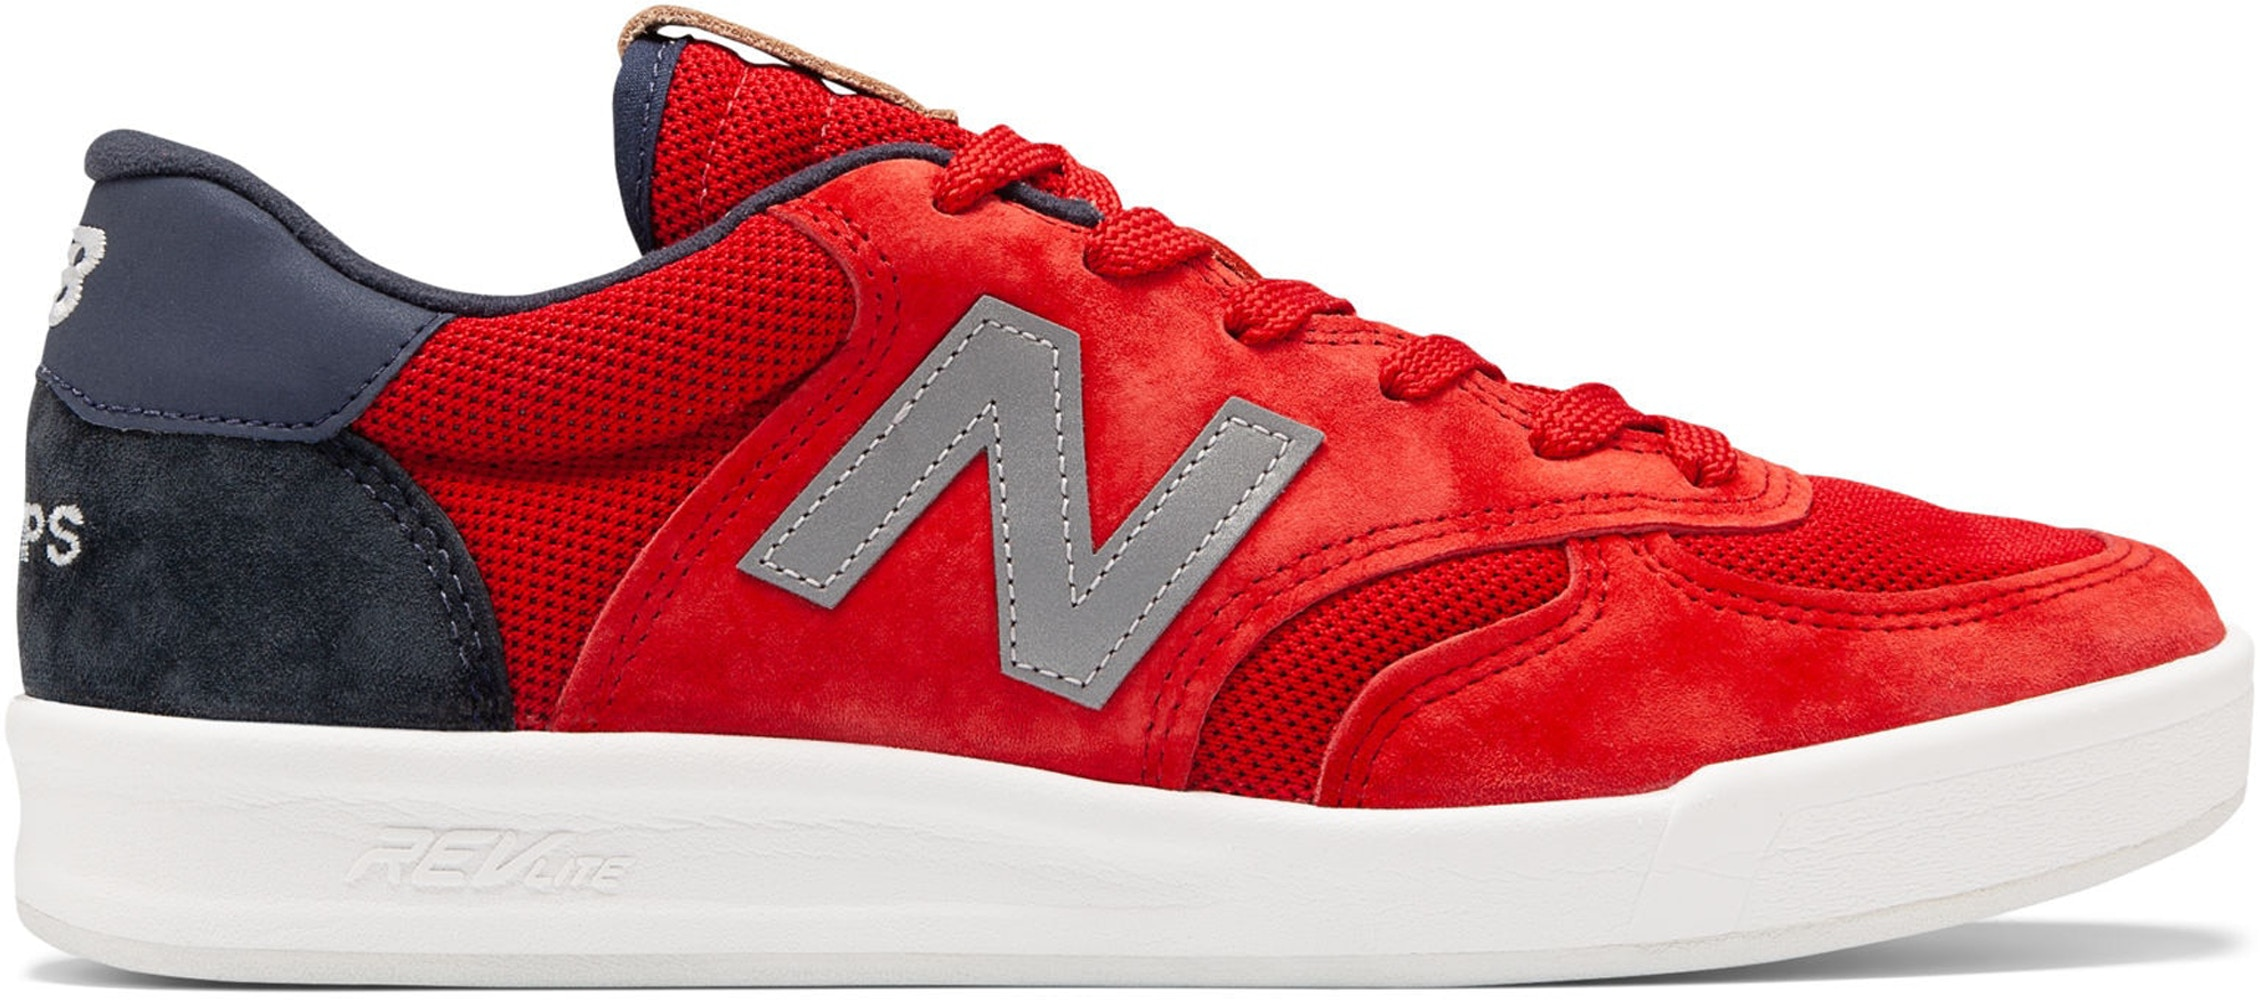 New Balance CT300 Boston Red Sox Fenway Champs (2018) - US300MBO